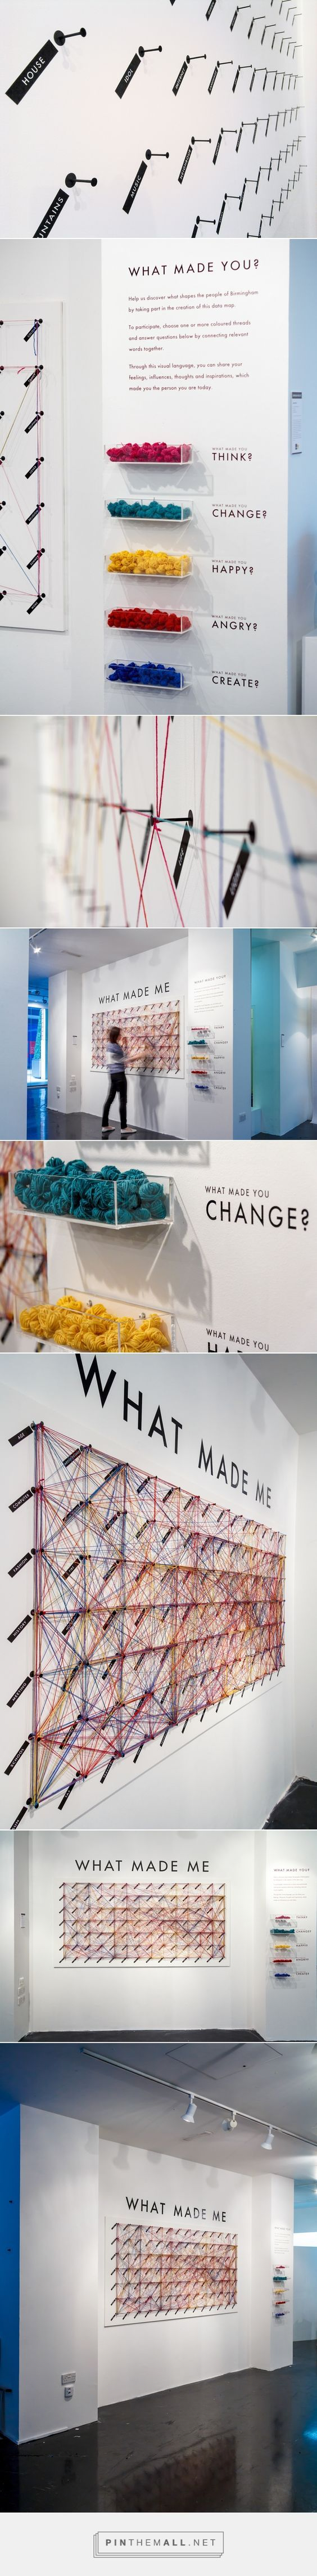 """Getting the attendee to make the graphics in your booth. """"Great way to add some interactivity"""" -triadcreativegroup.com:"""